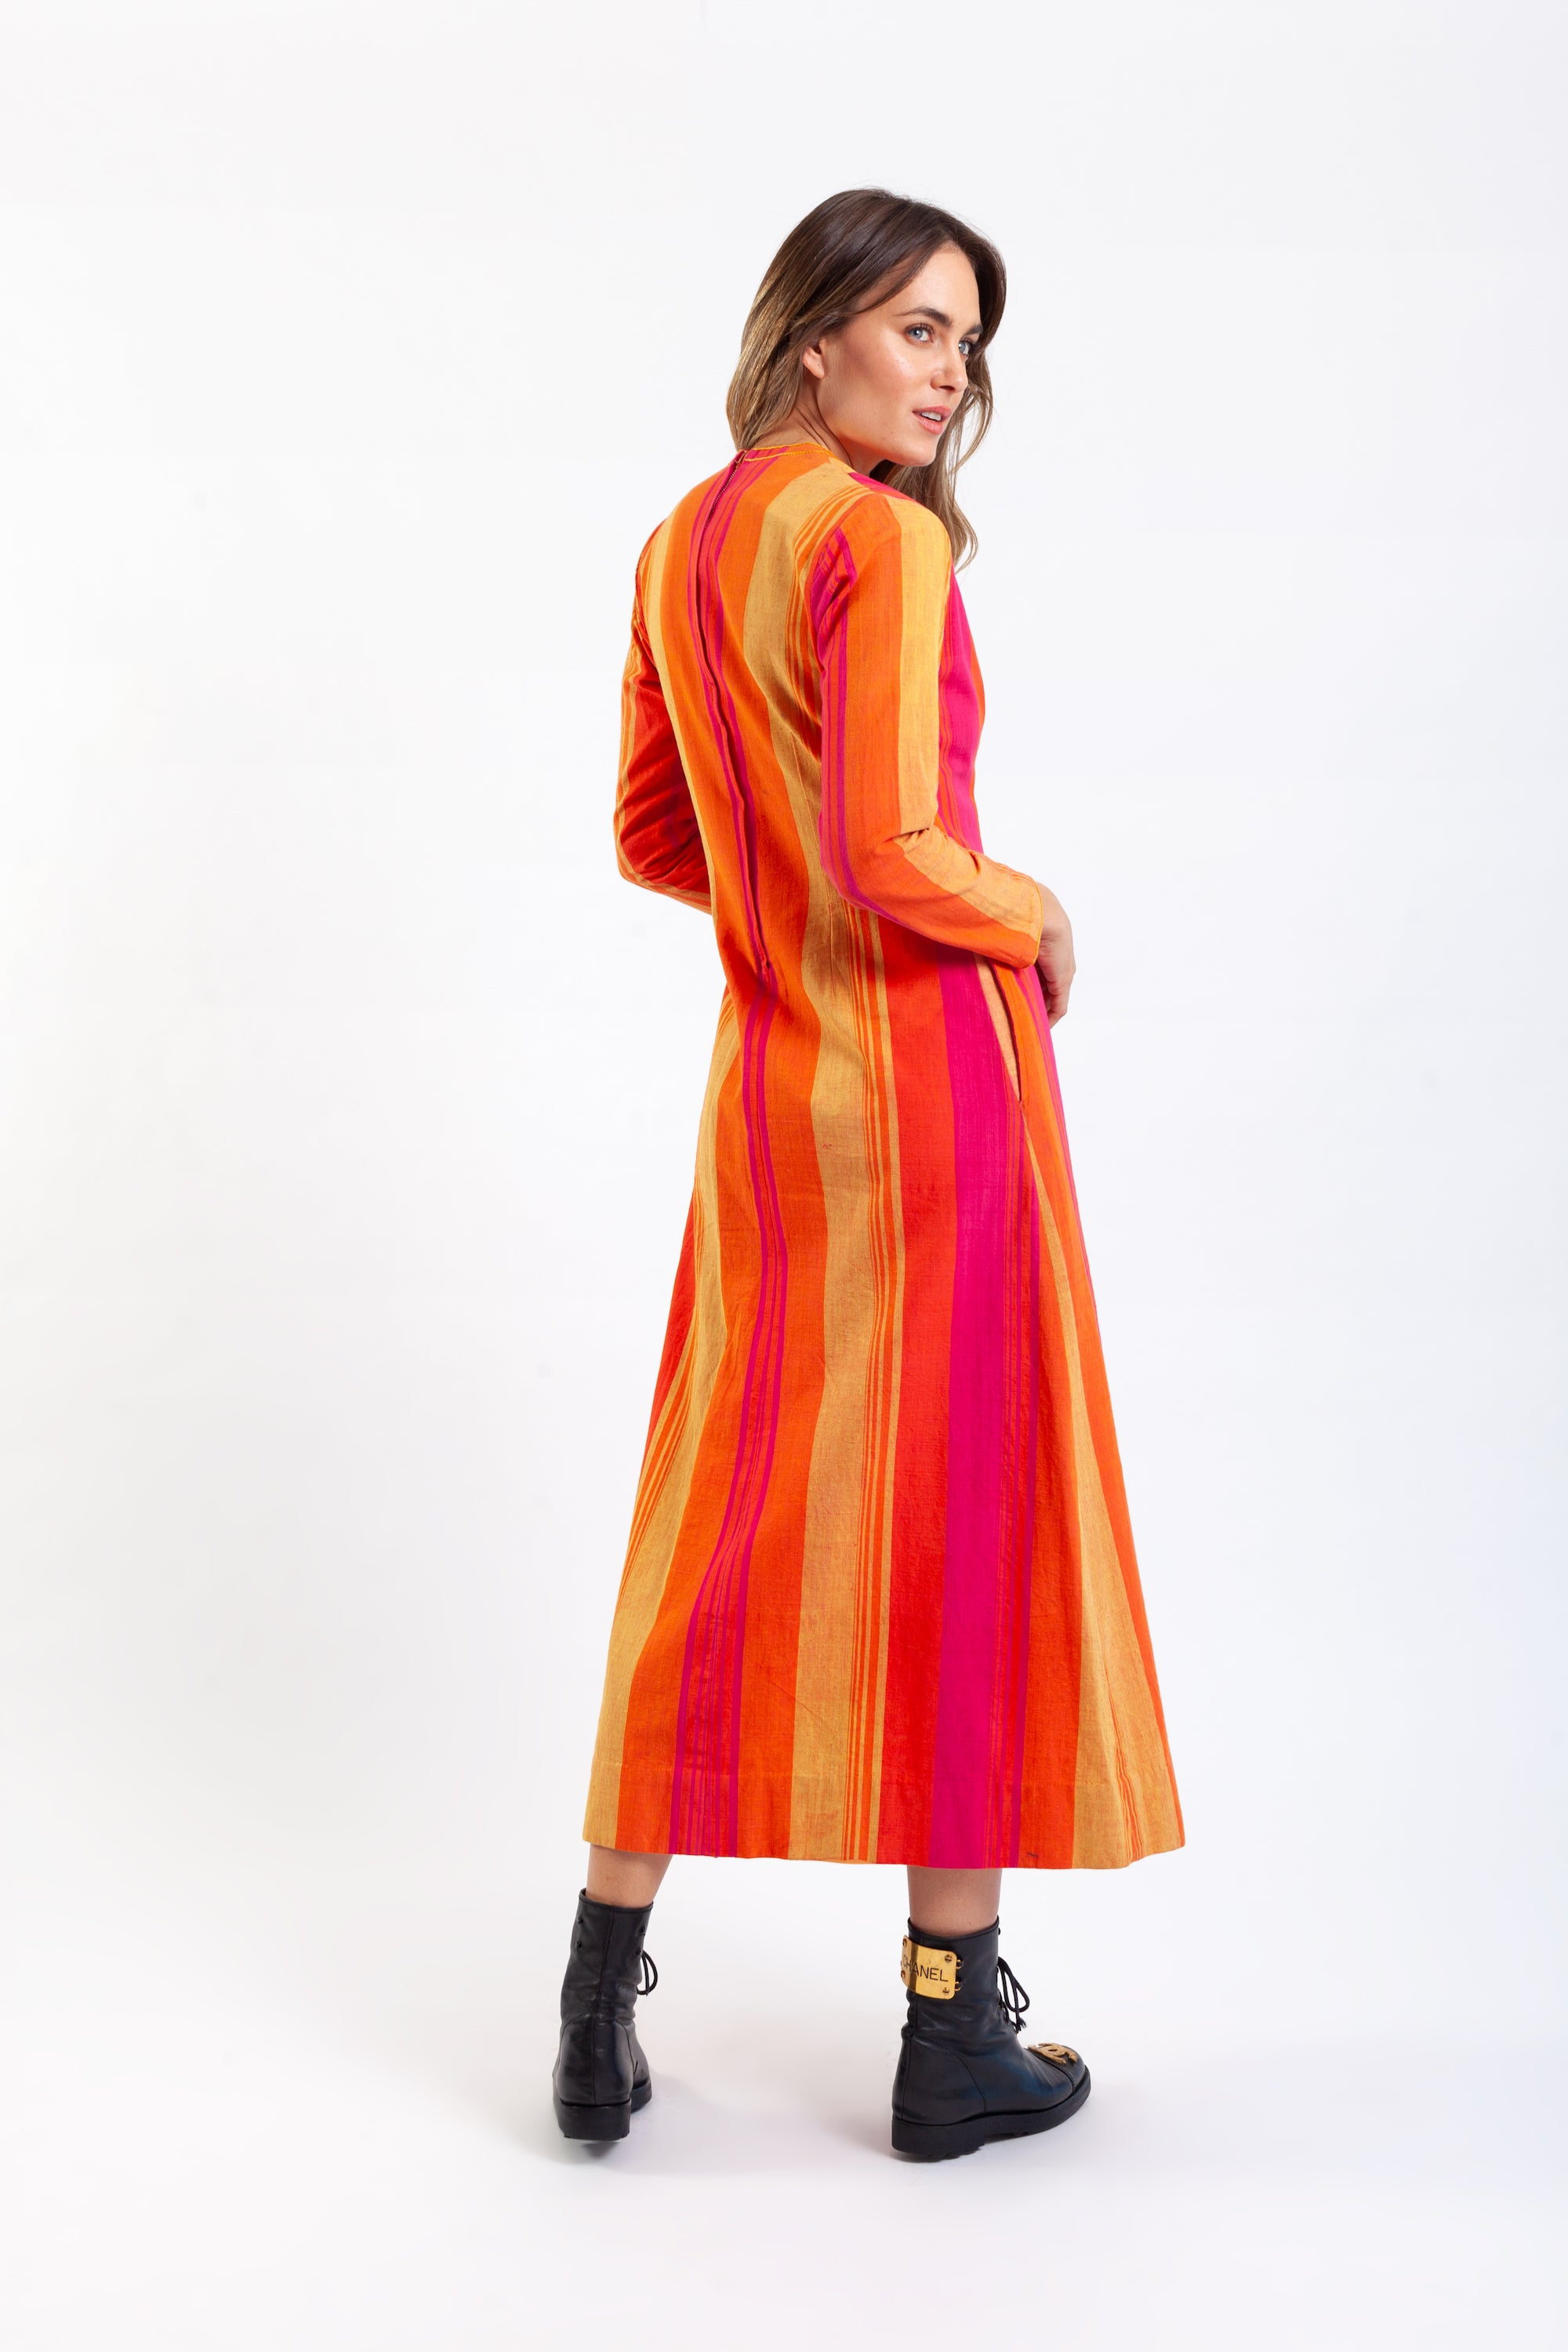 Girasol by Gonzalo Bauer <br> 60's/70's embroidered Mexican caftan